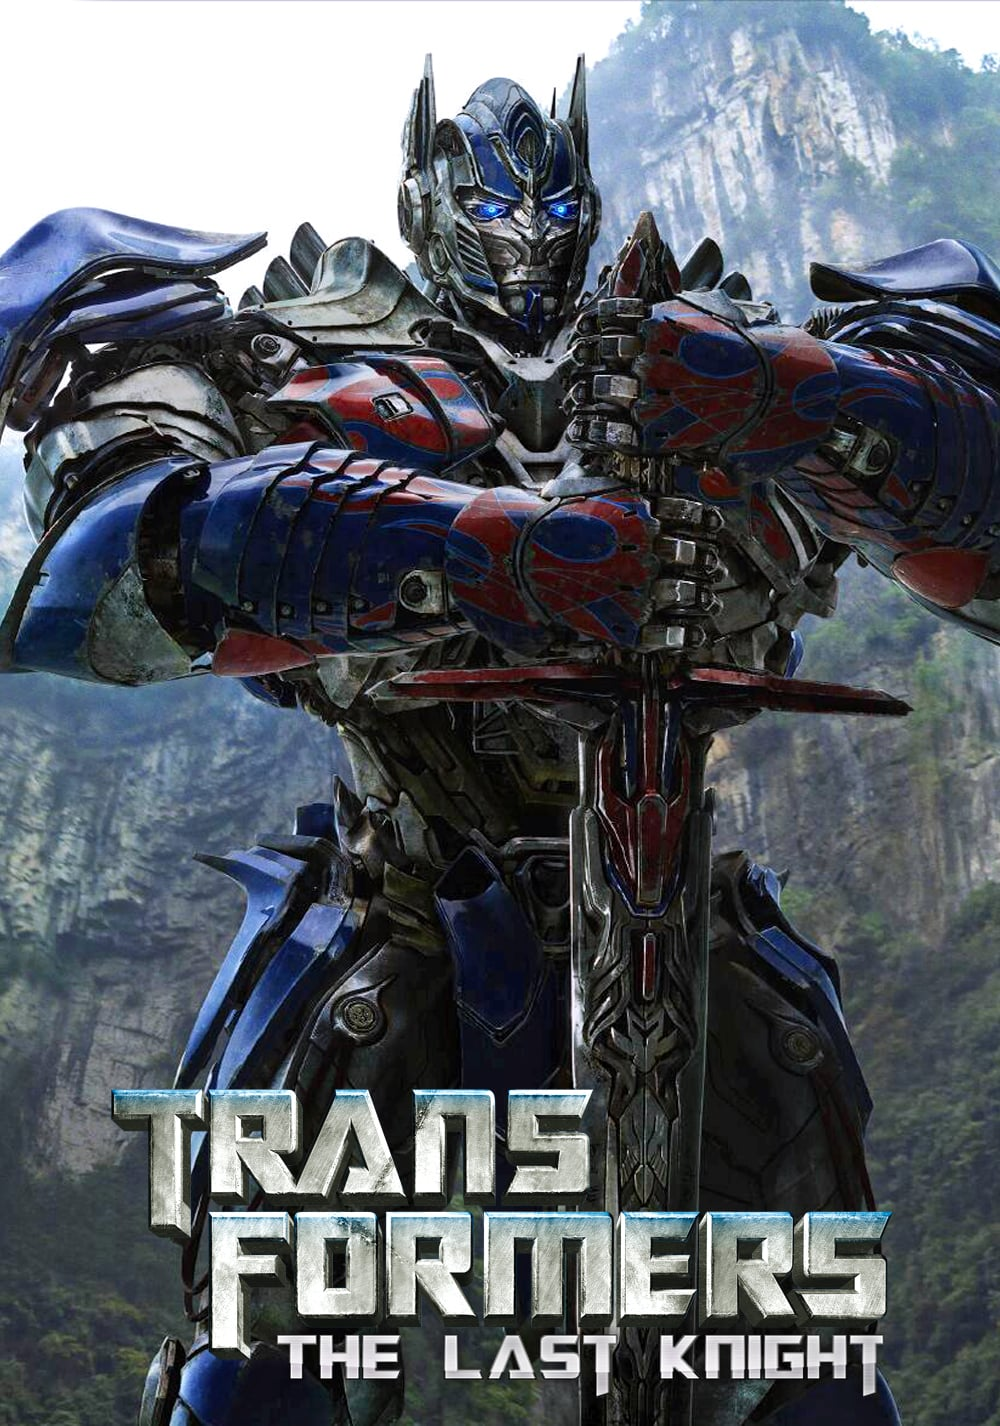 the last knight poster high quality HD printable wallpapers 2017 optimus prime with the sword